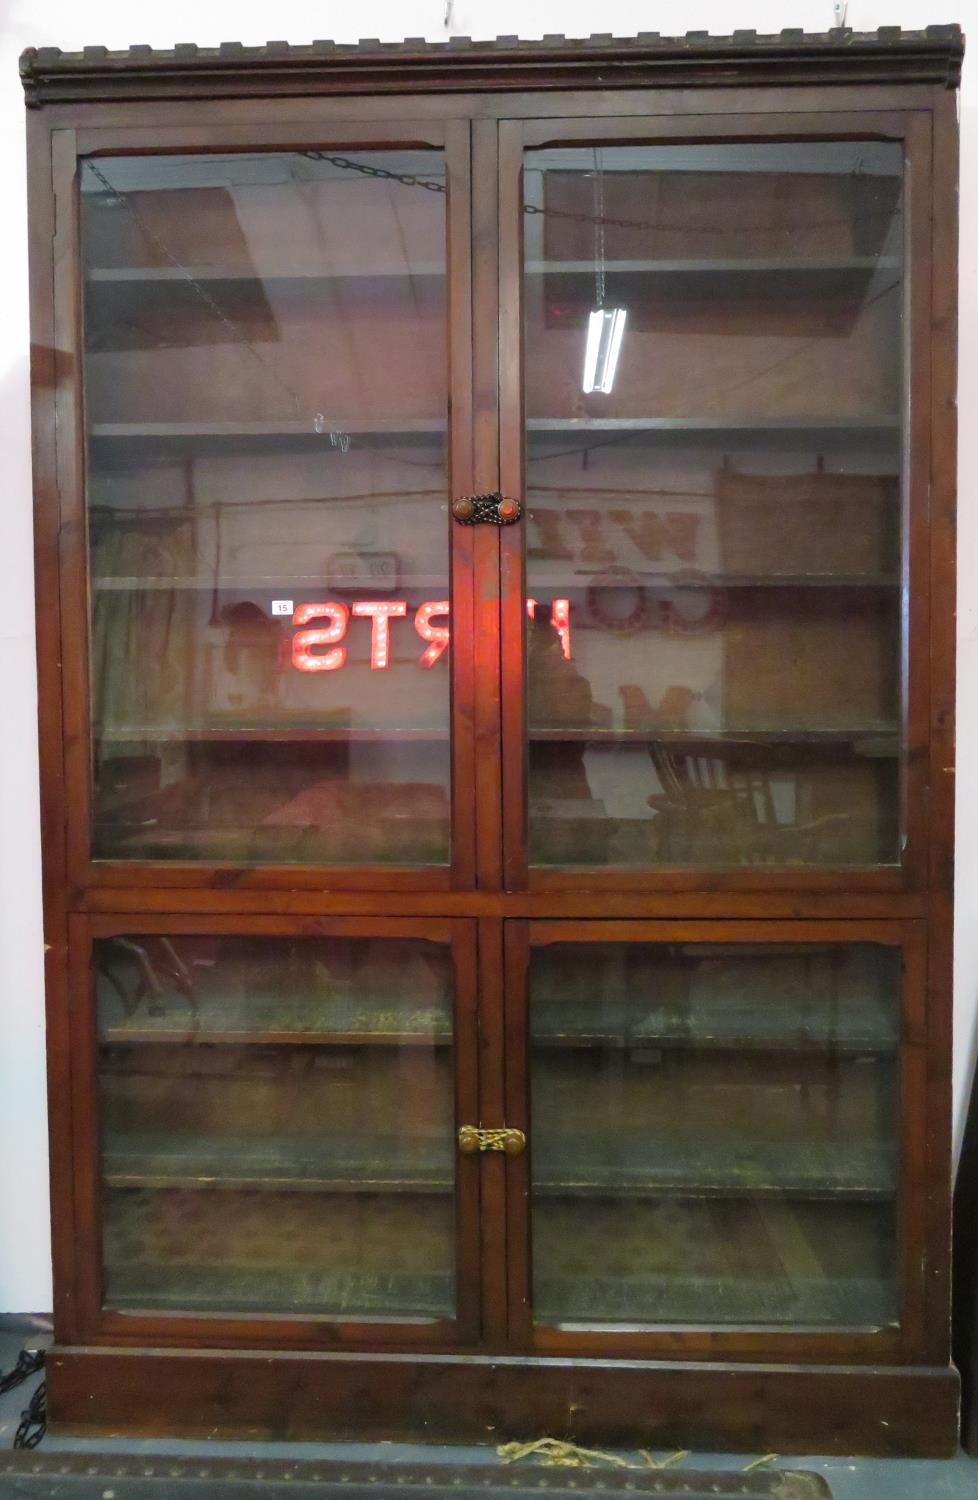 Lot 15 - 6' x 8' glass fronted bookshelf